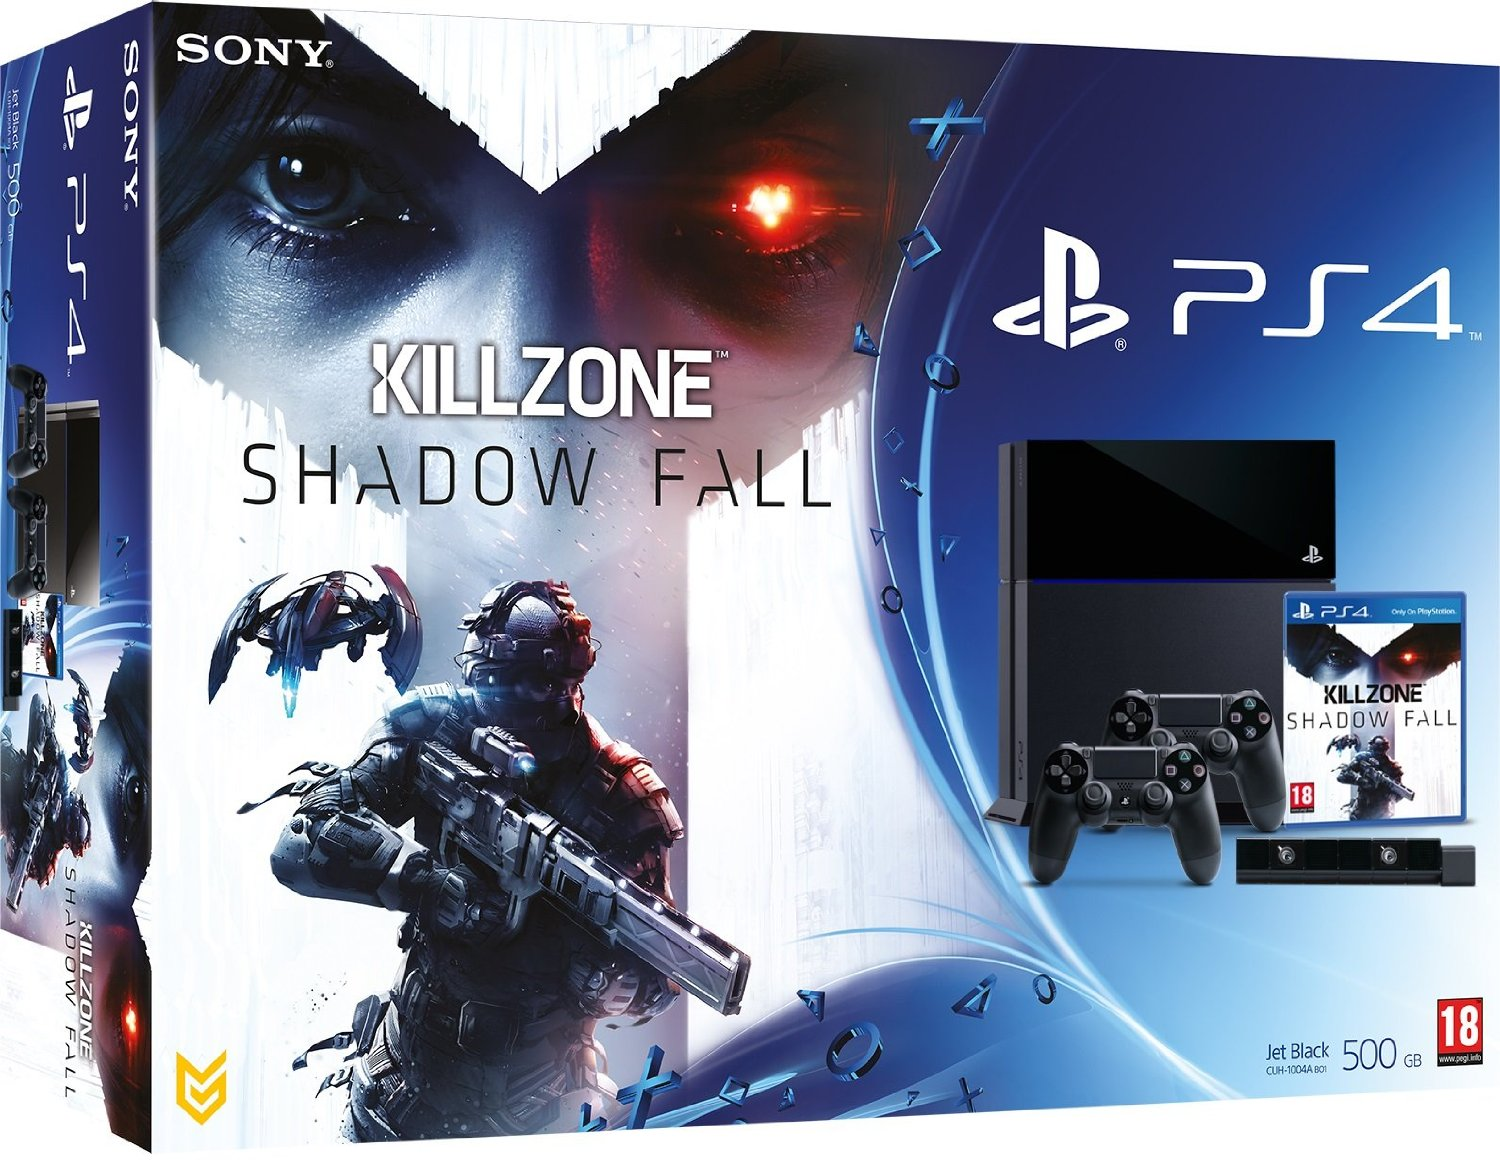 PS4 Killzone bundle